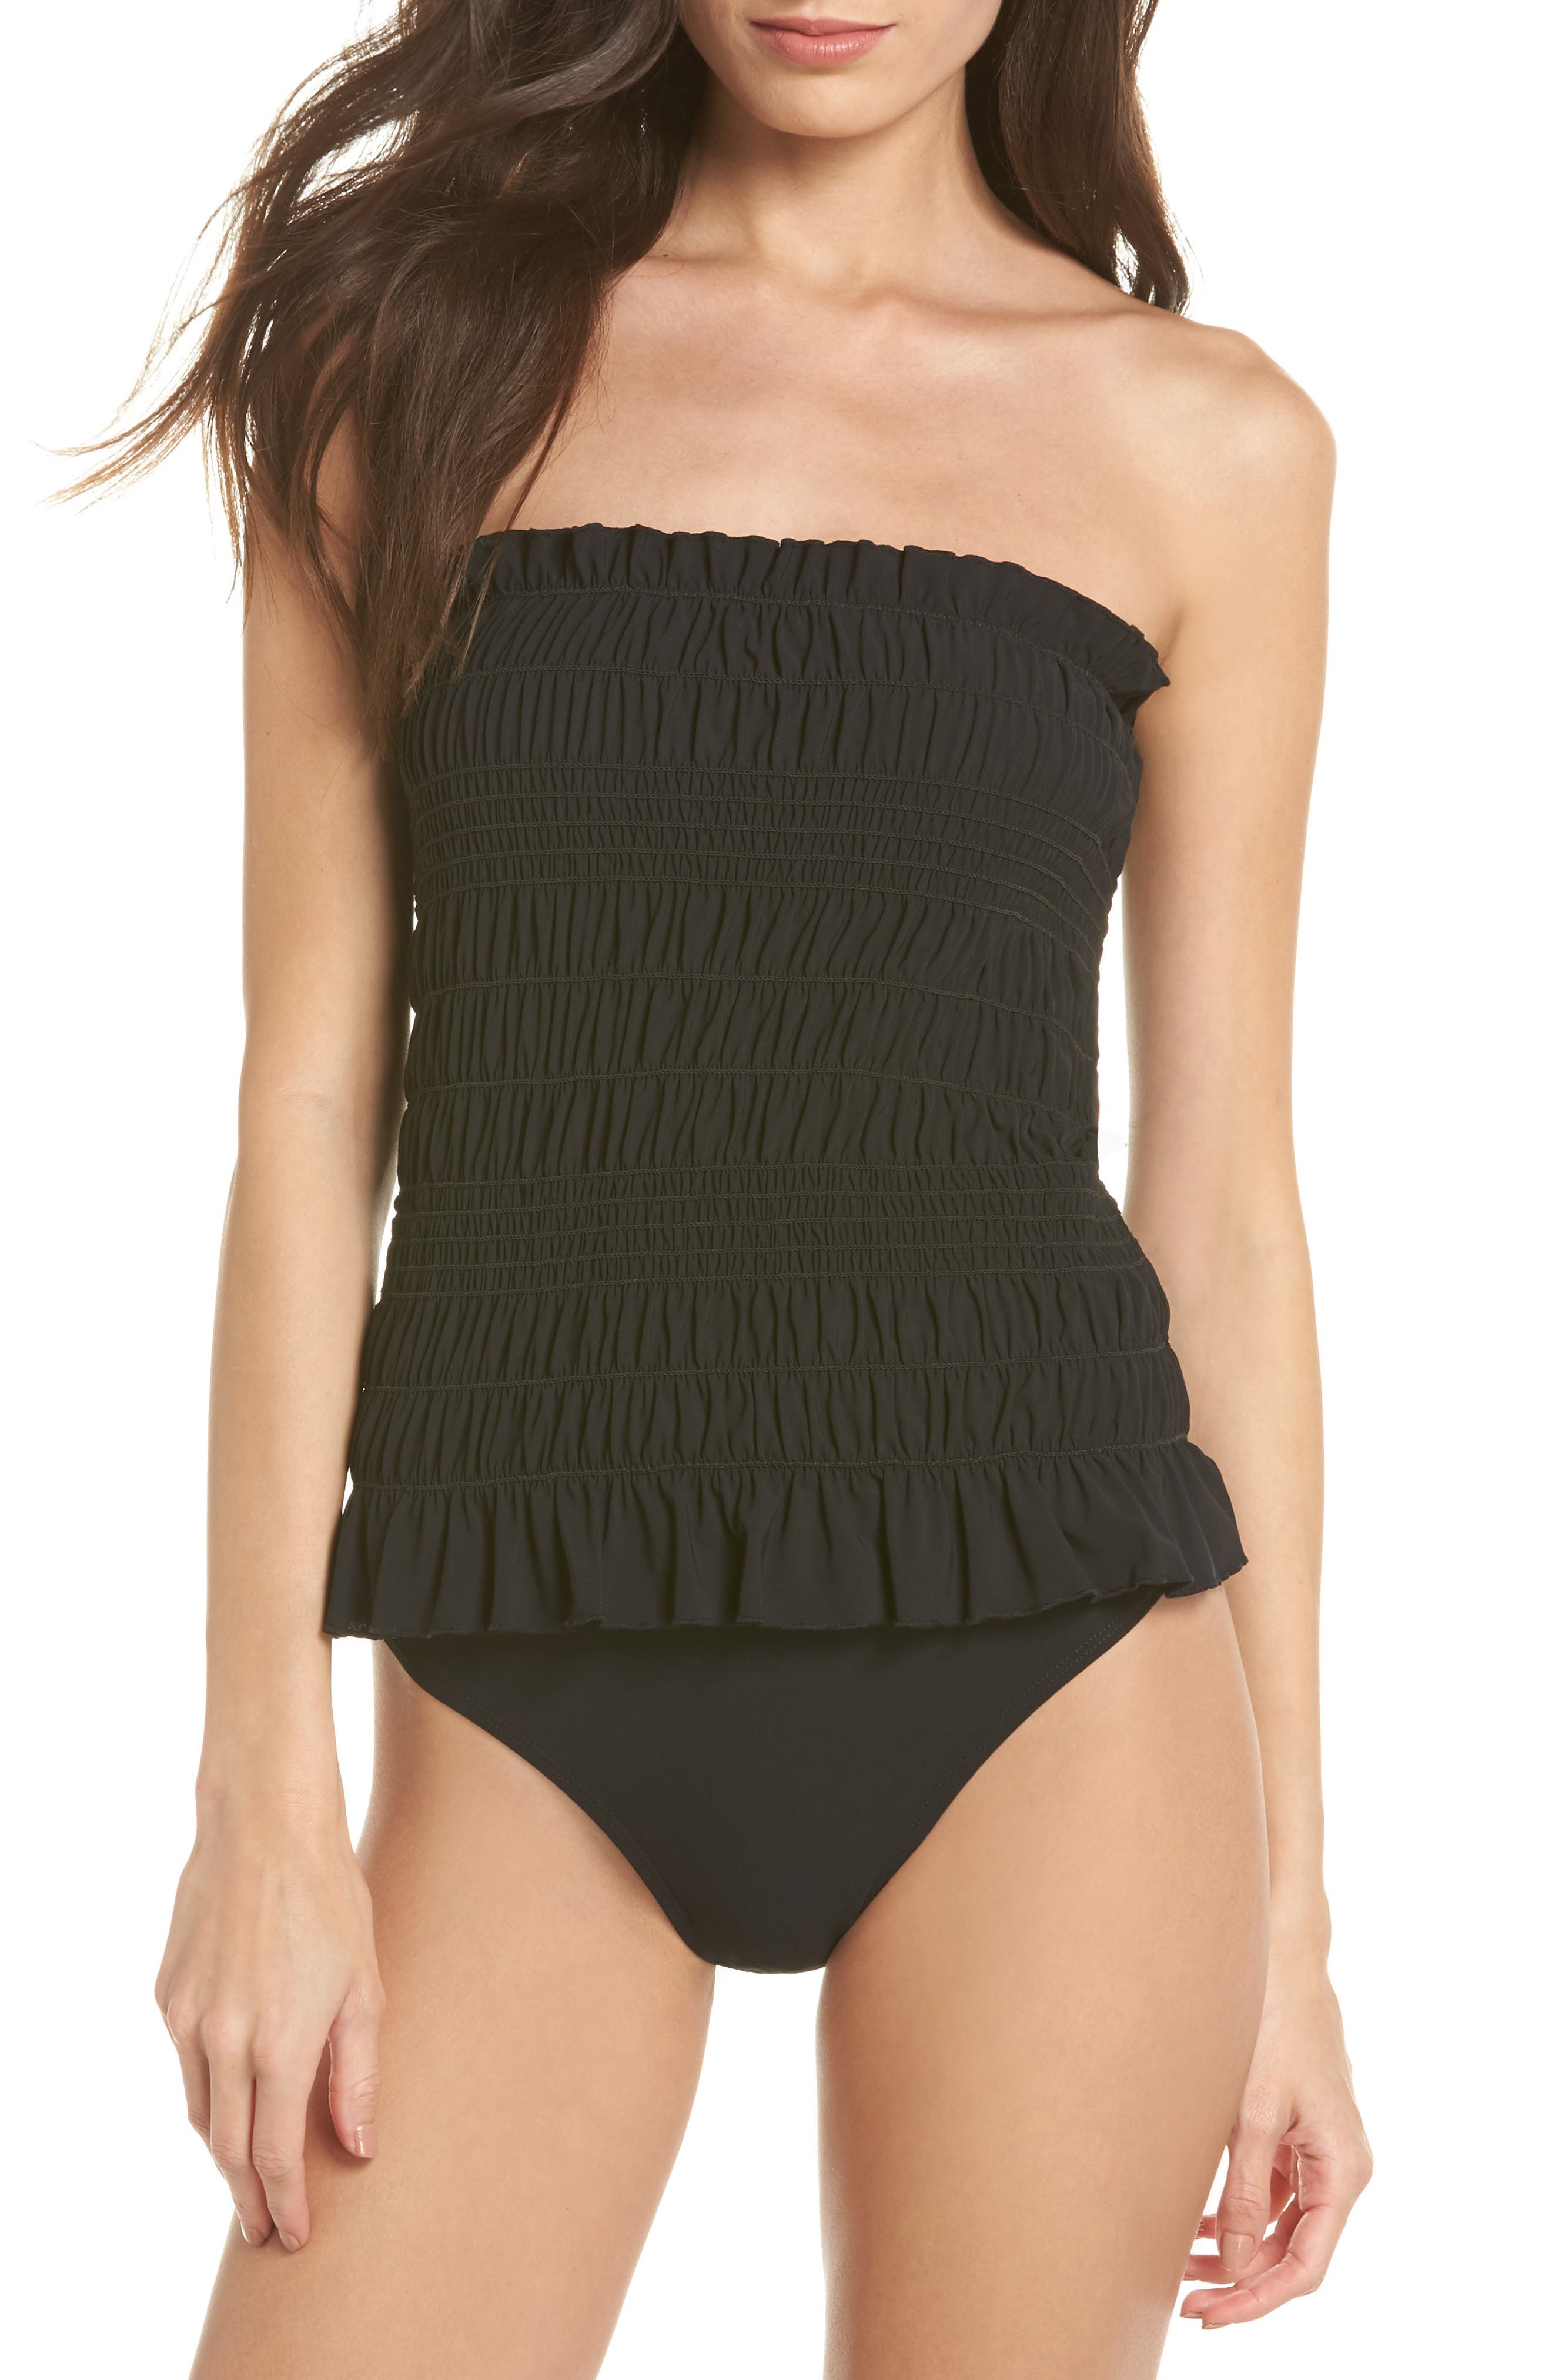 Tory Burch Costa Smocked One-Piece Swimsuit